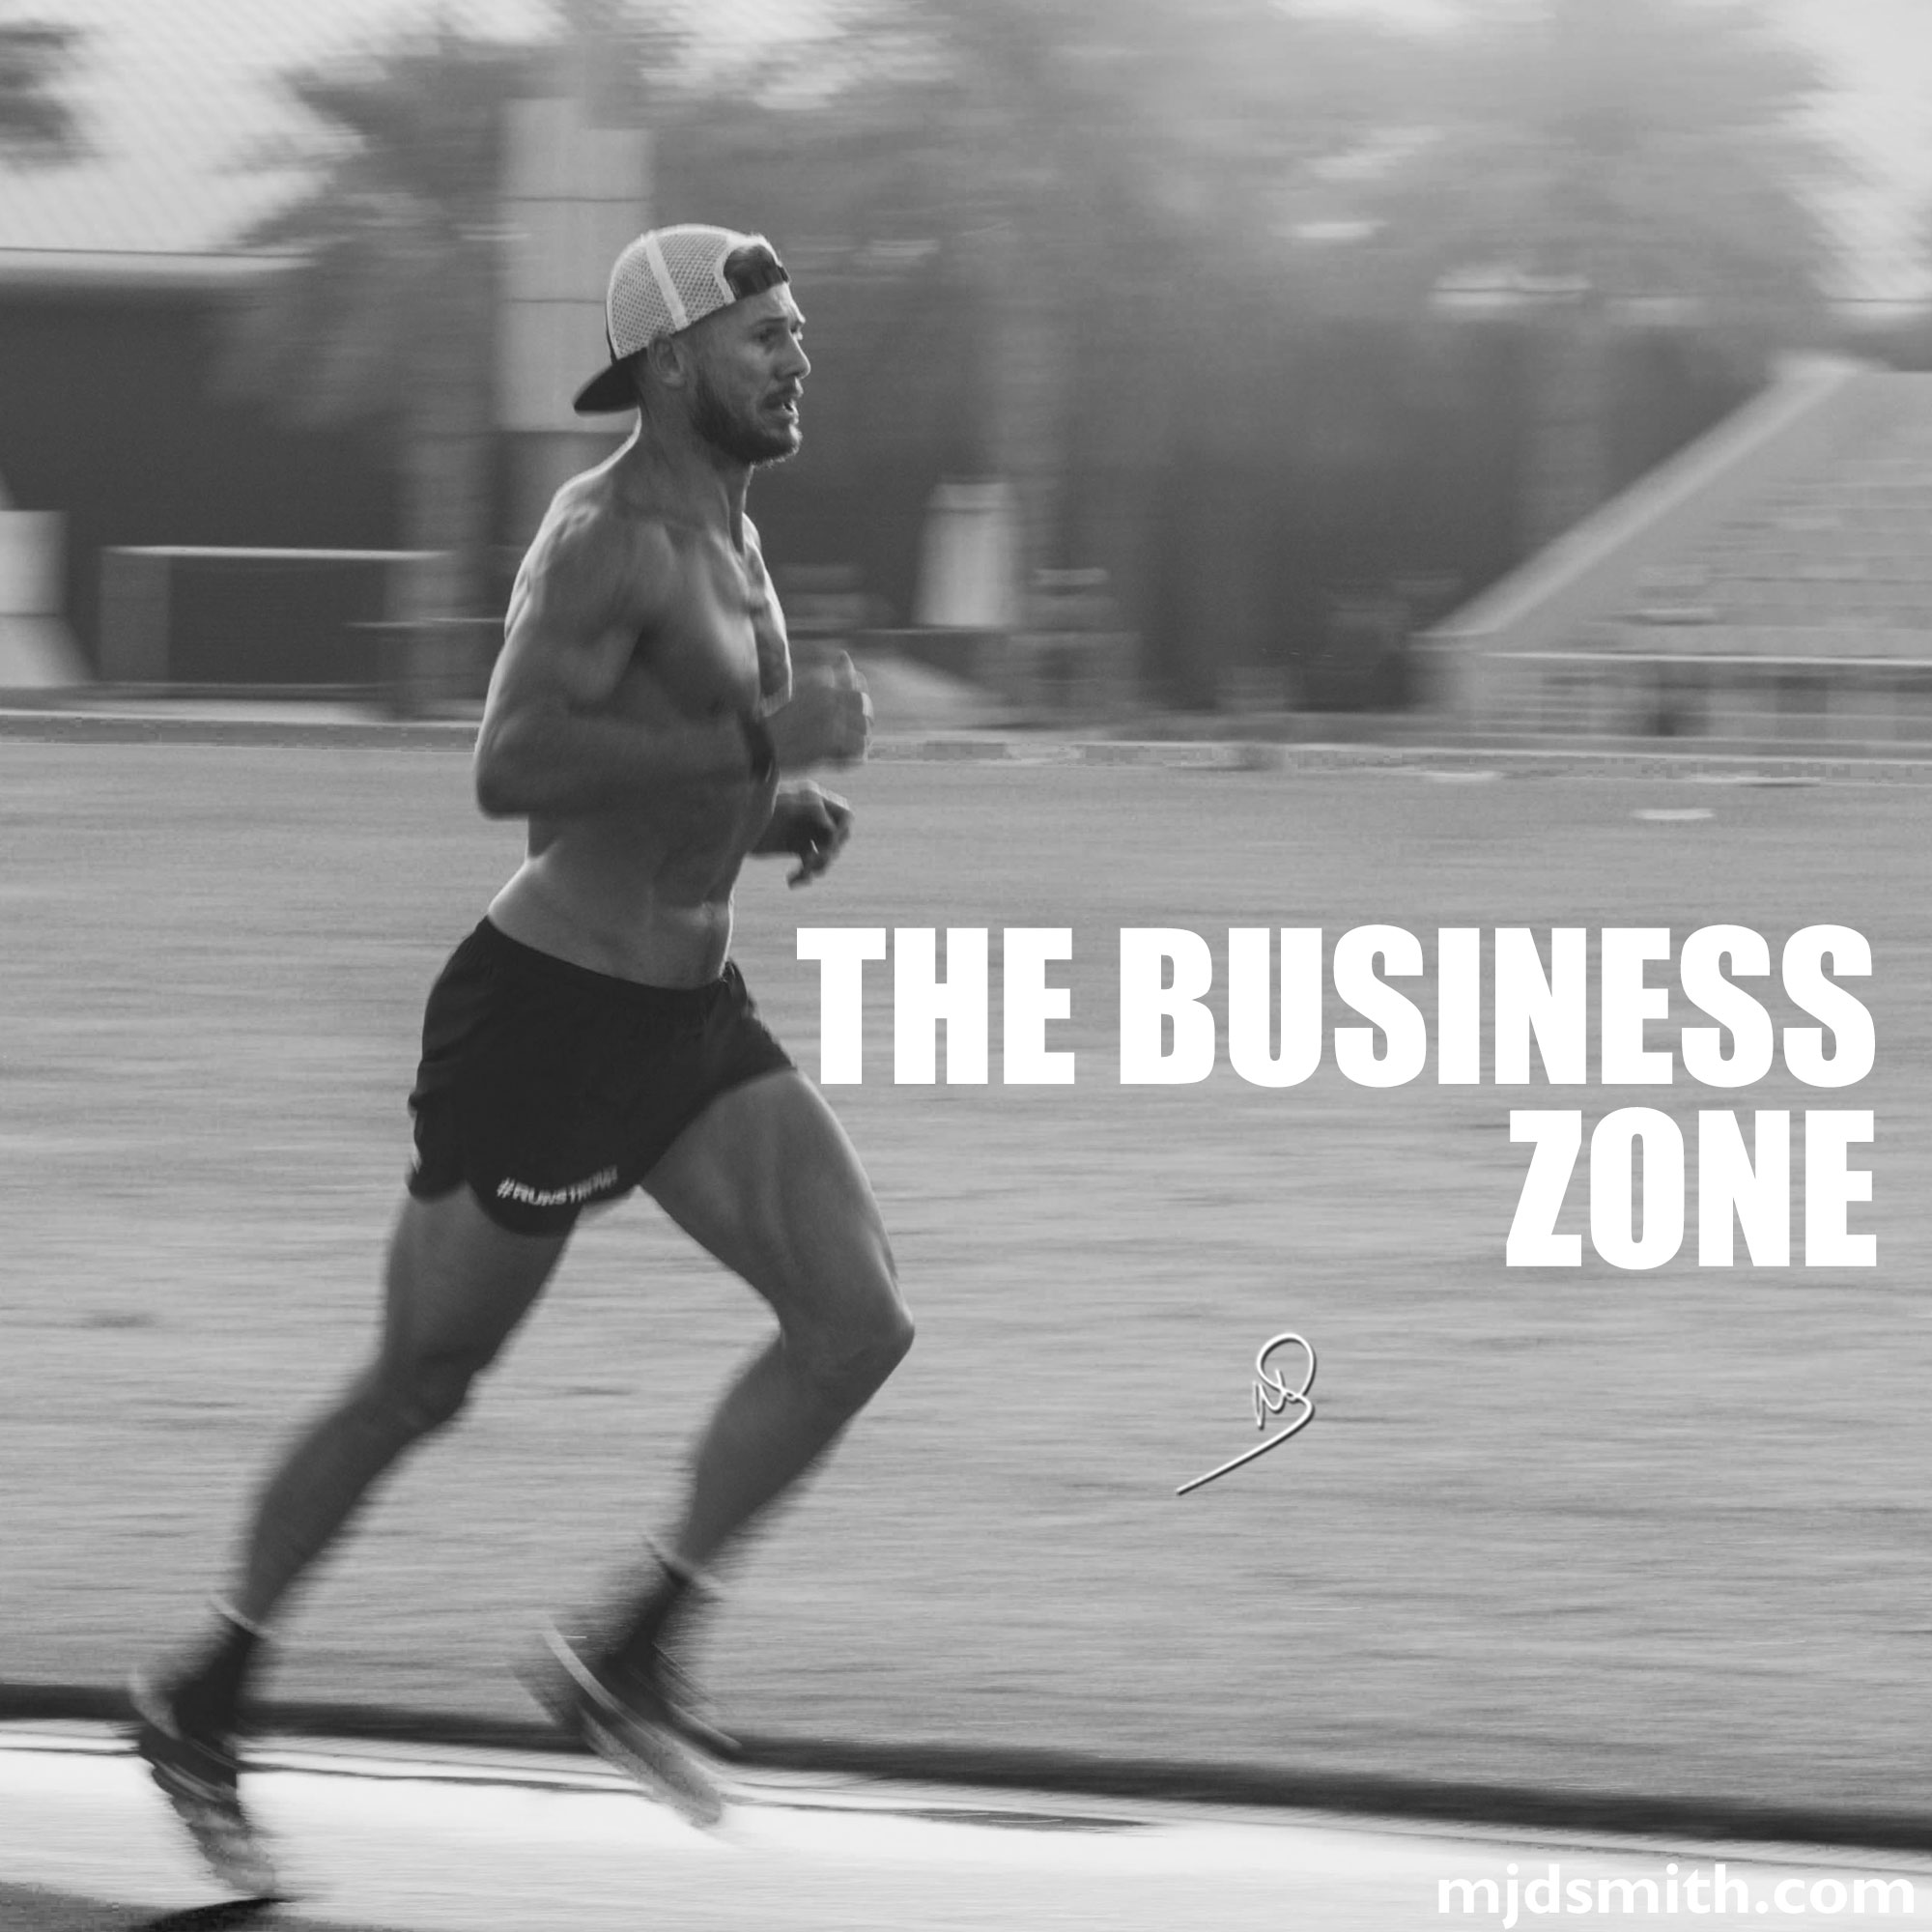 The business zone